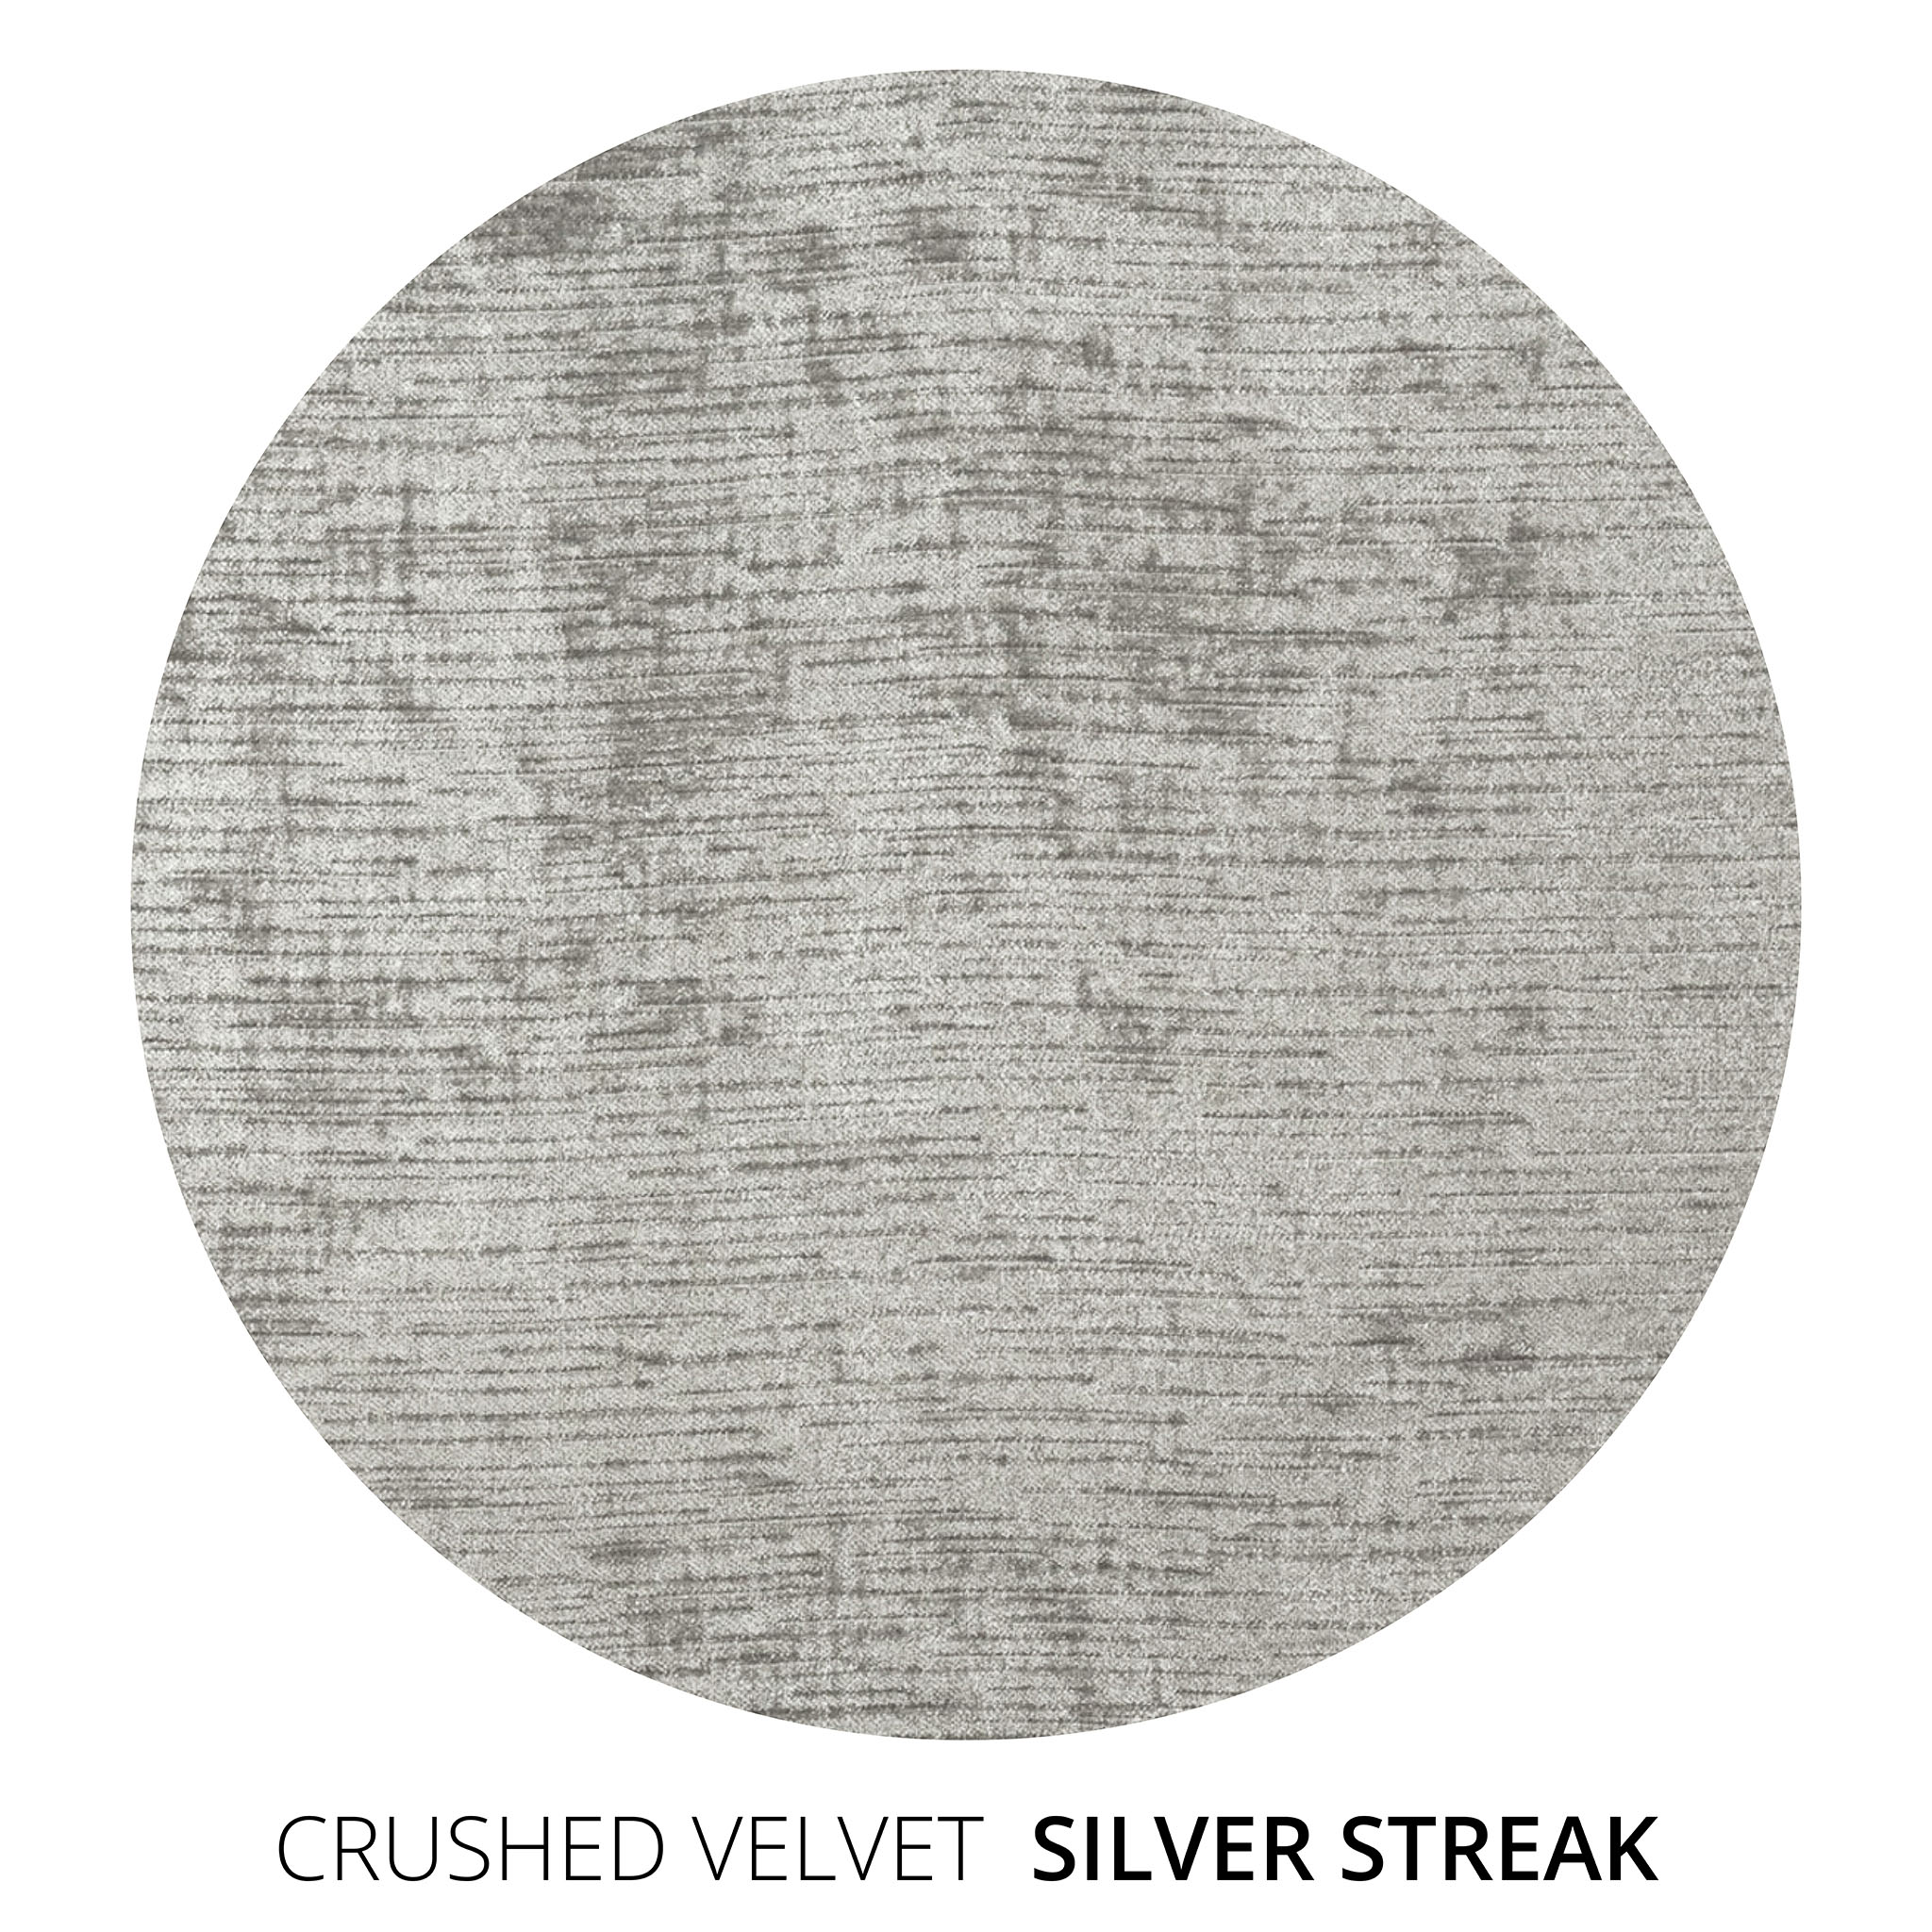 Silver Streak Crushed Velvet Swatch